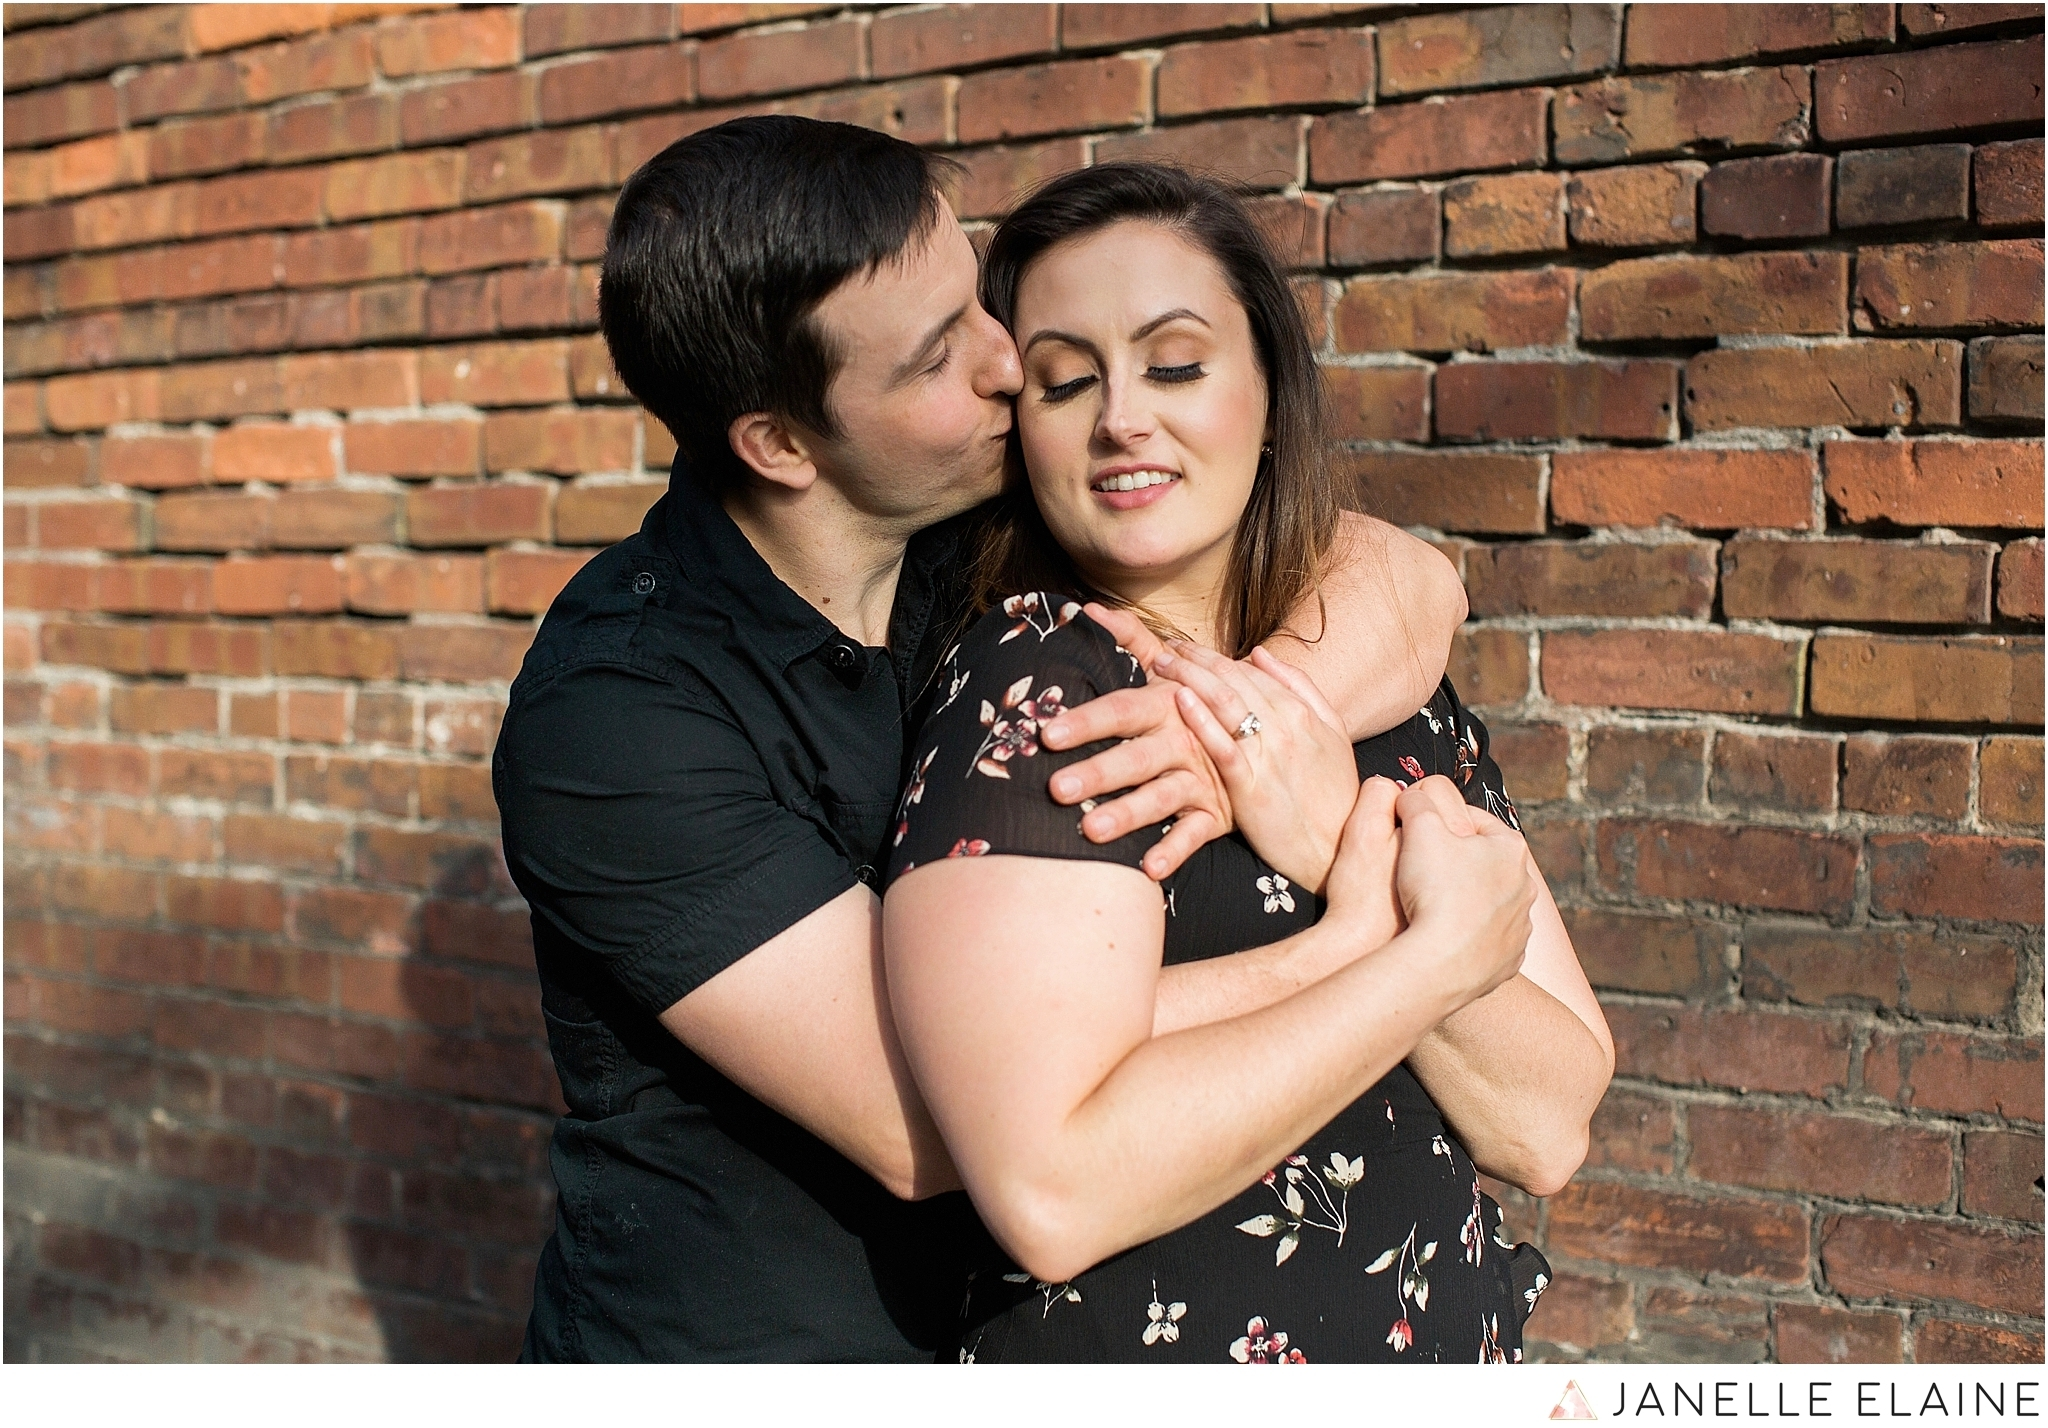 karen ethan-georgetown engagement photos-seattle-janelle elaine photography-127.jpg